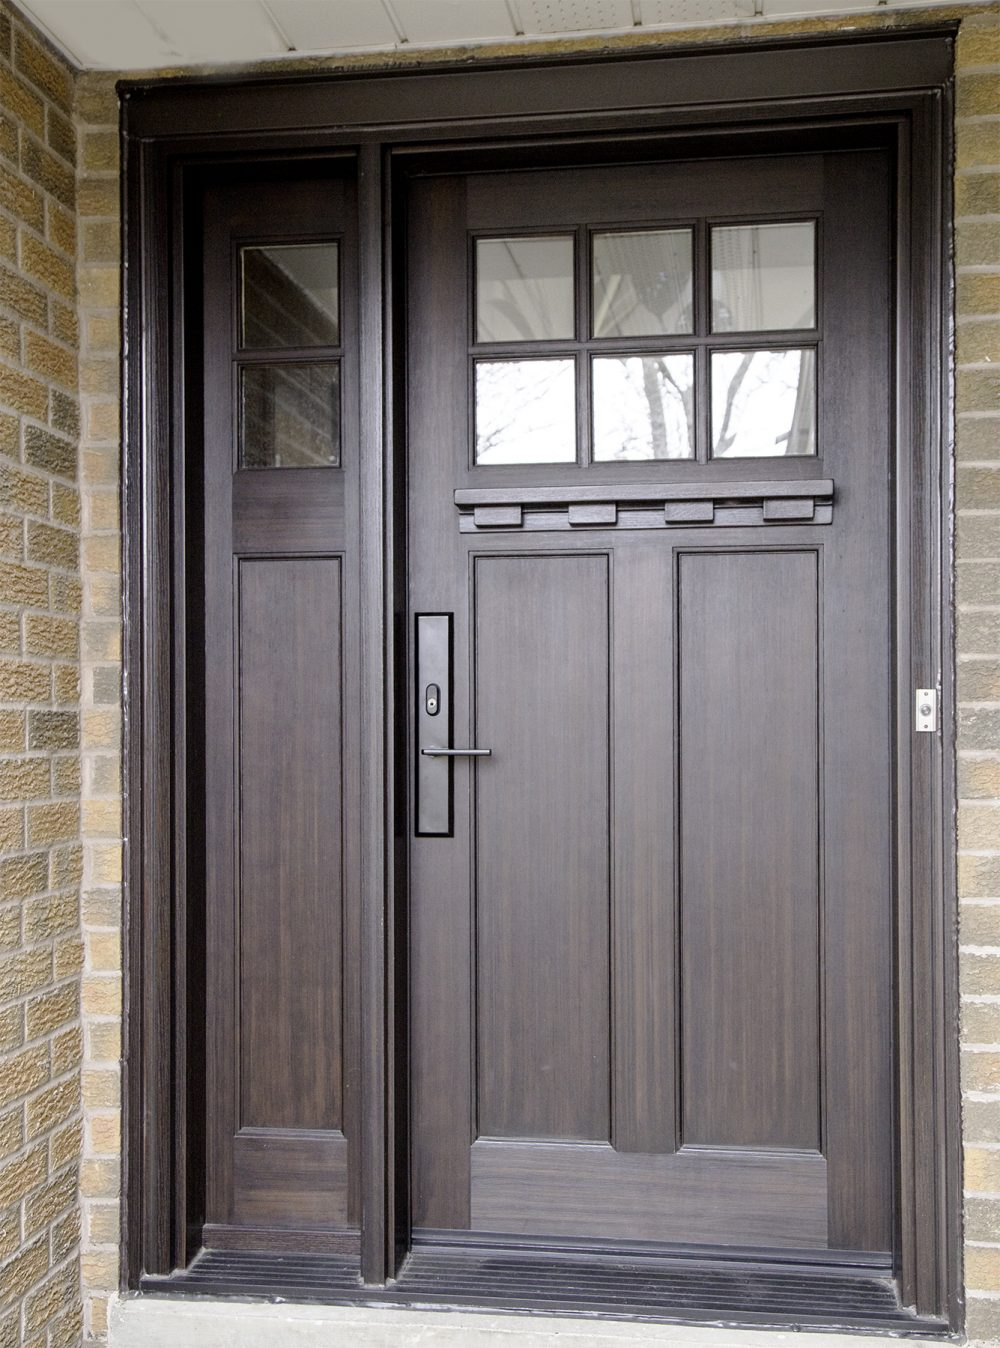 fiberglass door system with clear glass